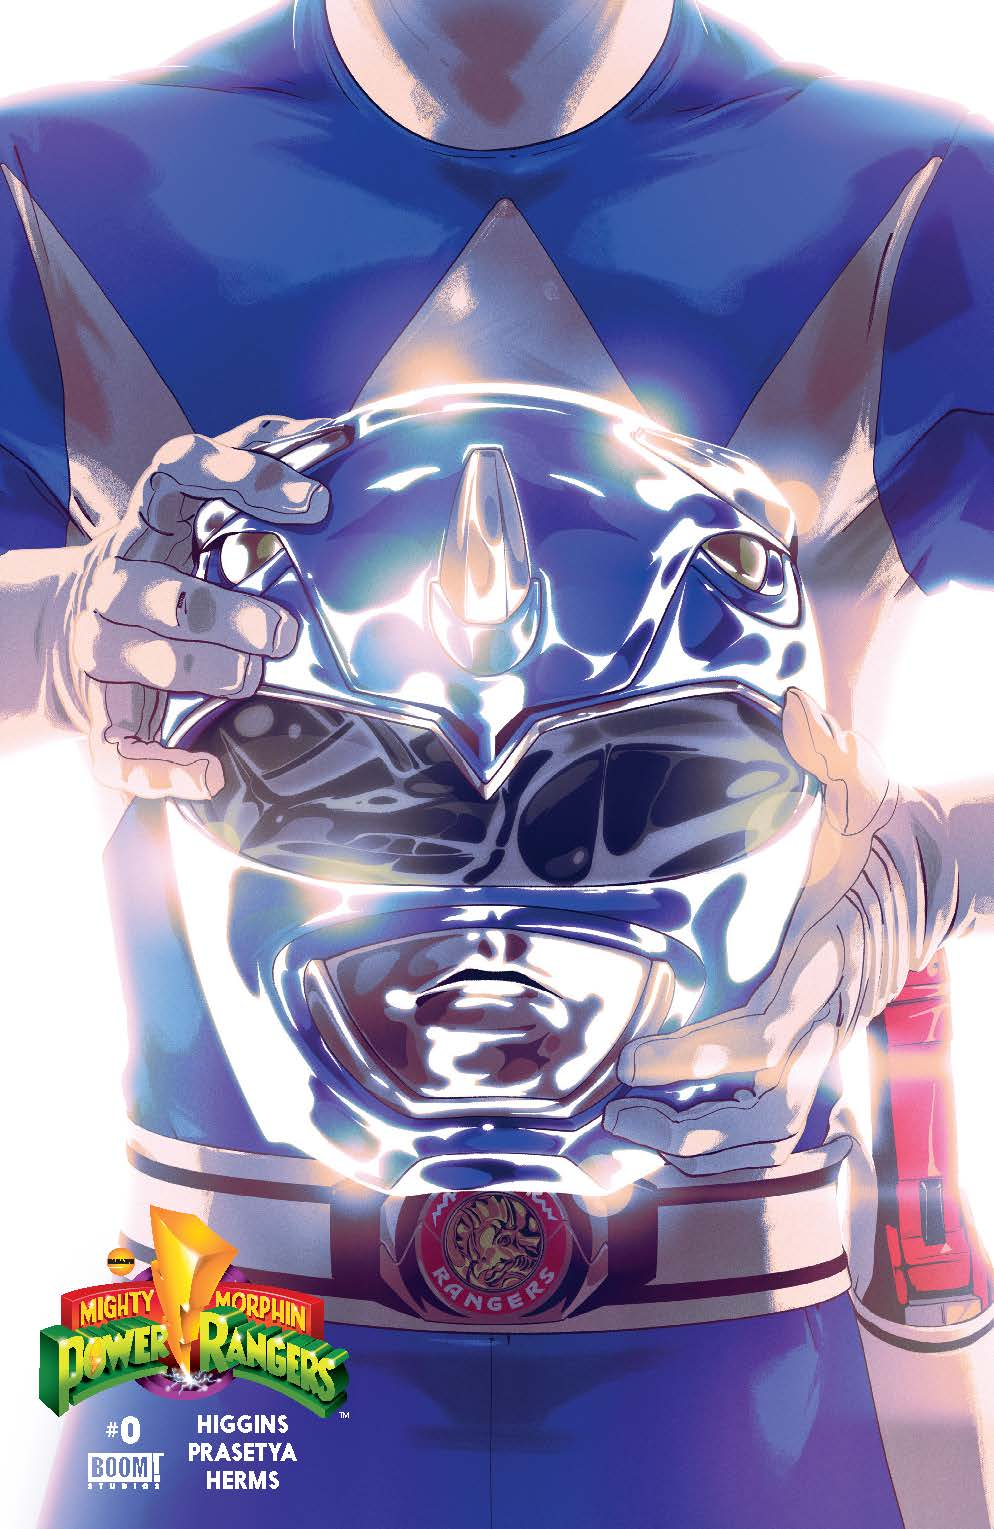 MIghty Morphin Power Rangers #0 Blue Cover